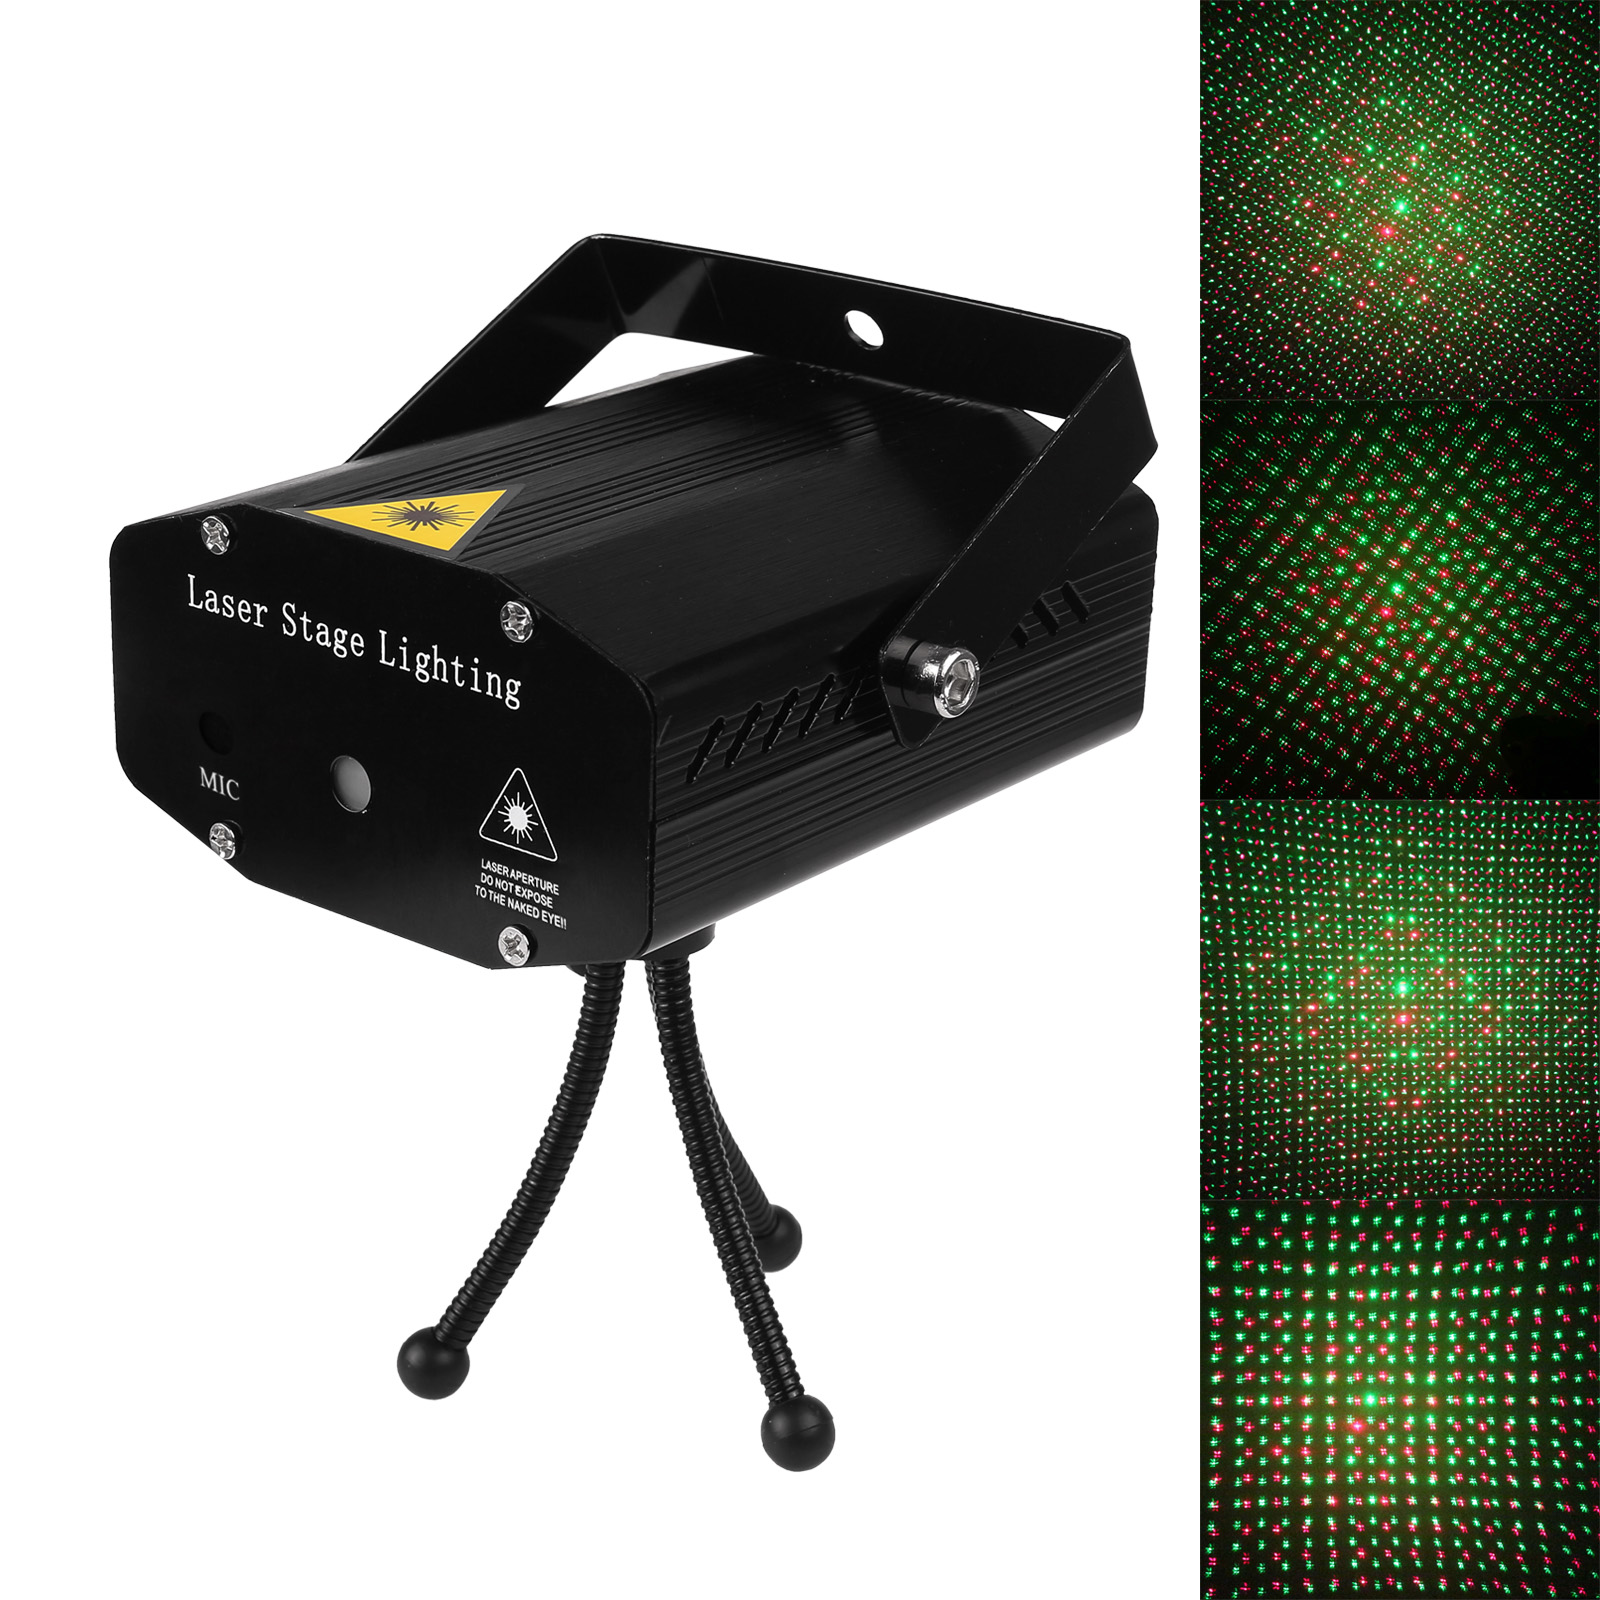 Projector Lamp Decorations Laser Light Voice-activated DJ Party Club Light Valentines Day Mini LED Laser Stage Laser LightingProjector Lamp Decorations Laser Light Voice-activated DJ Party Club Light Valentines Day Mini LED Laser Stage Laser Lighting